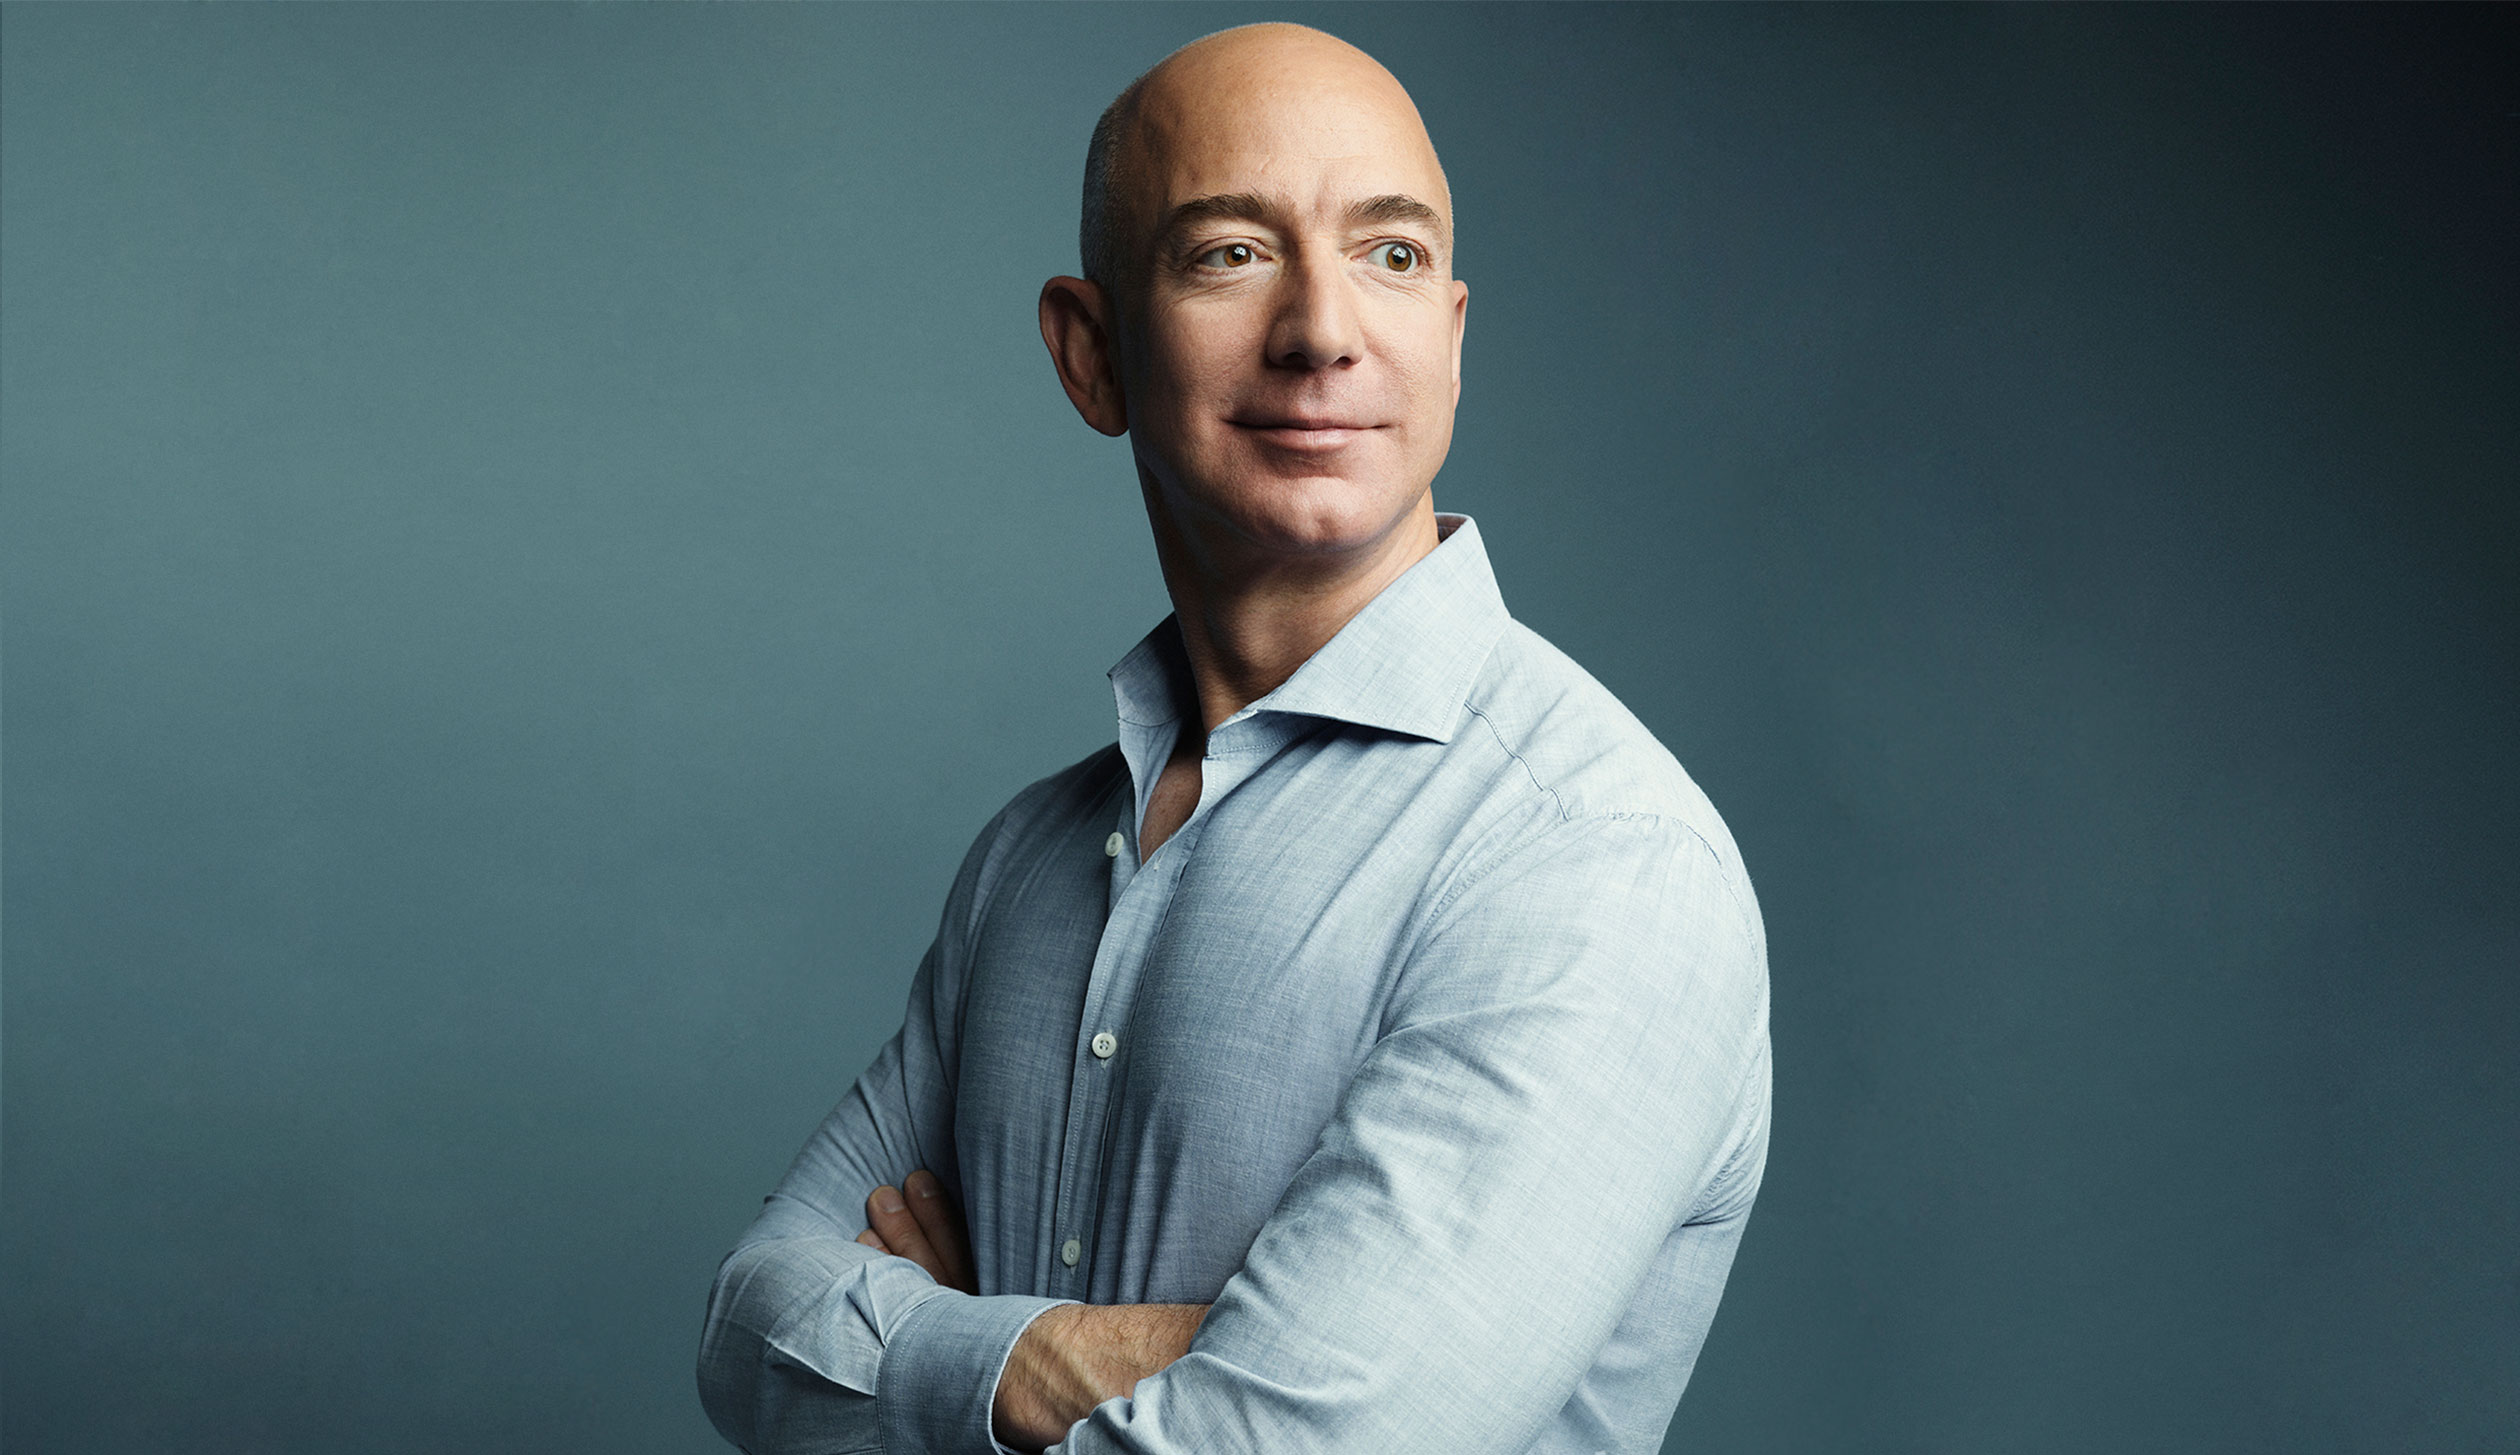 Jeff Bezos - Founder of Amazon.com